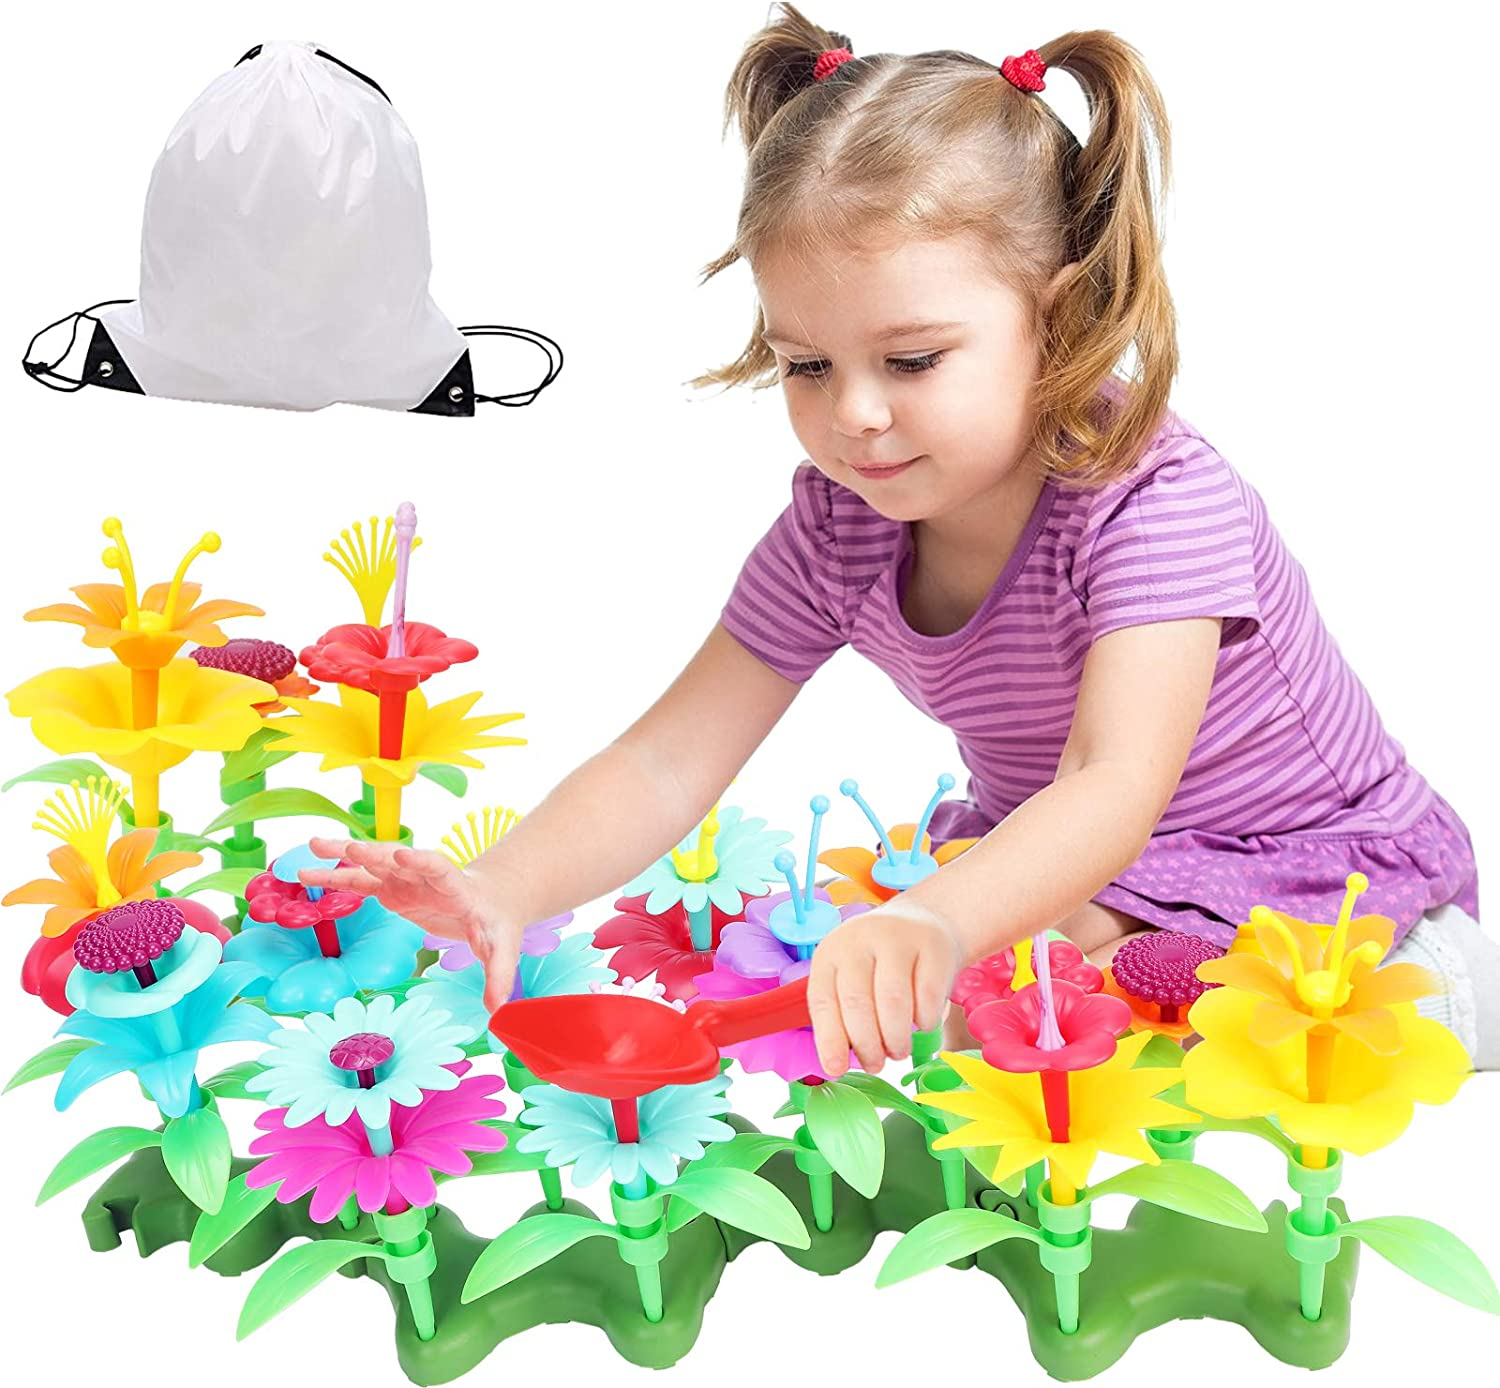 Jogotoll Flower Garden Building Toys,138 PCS Gardening Pretend Set Gifts for 3-6 Year Old Girls,Arts and Crafts Toys for Girls,Educational Activity Stem Toys